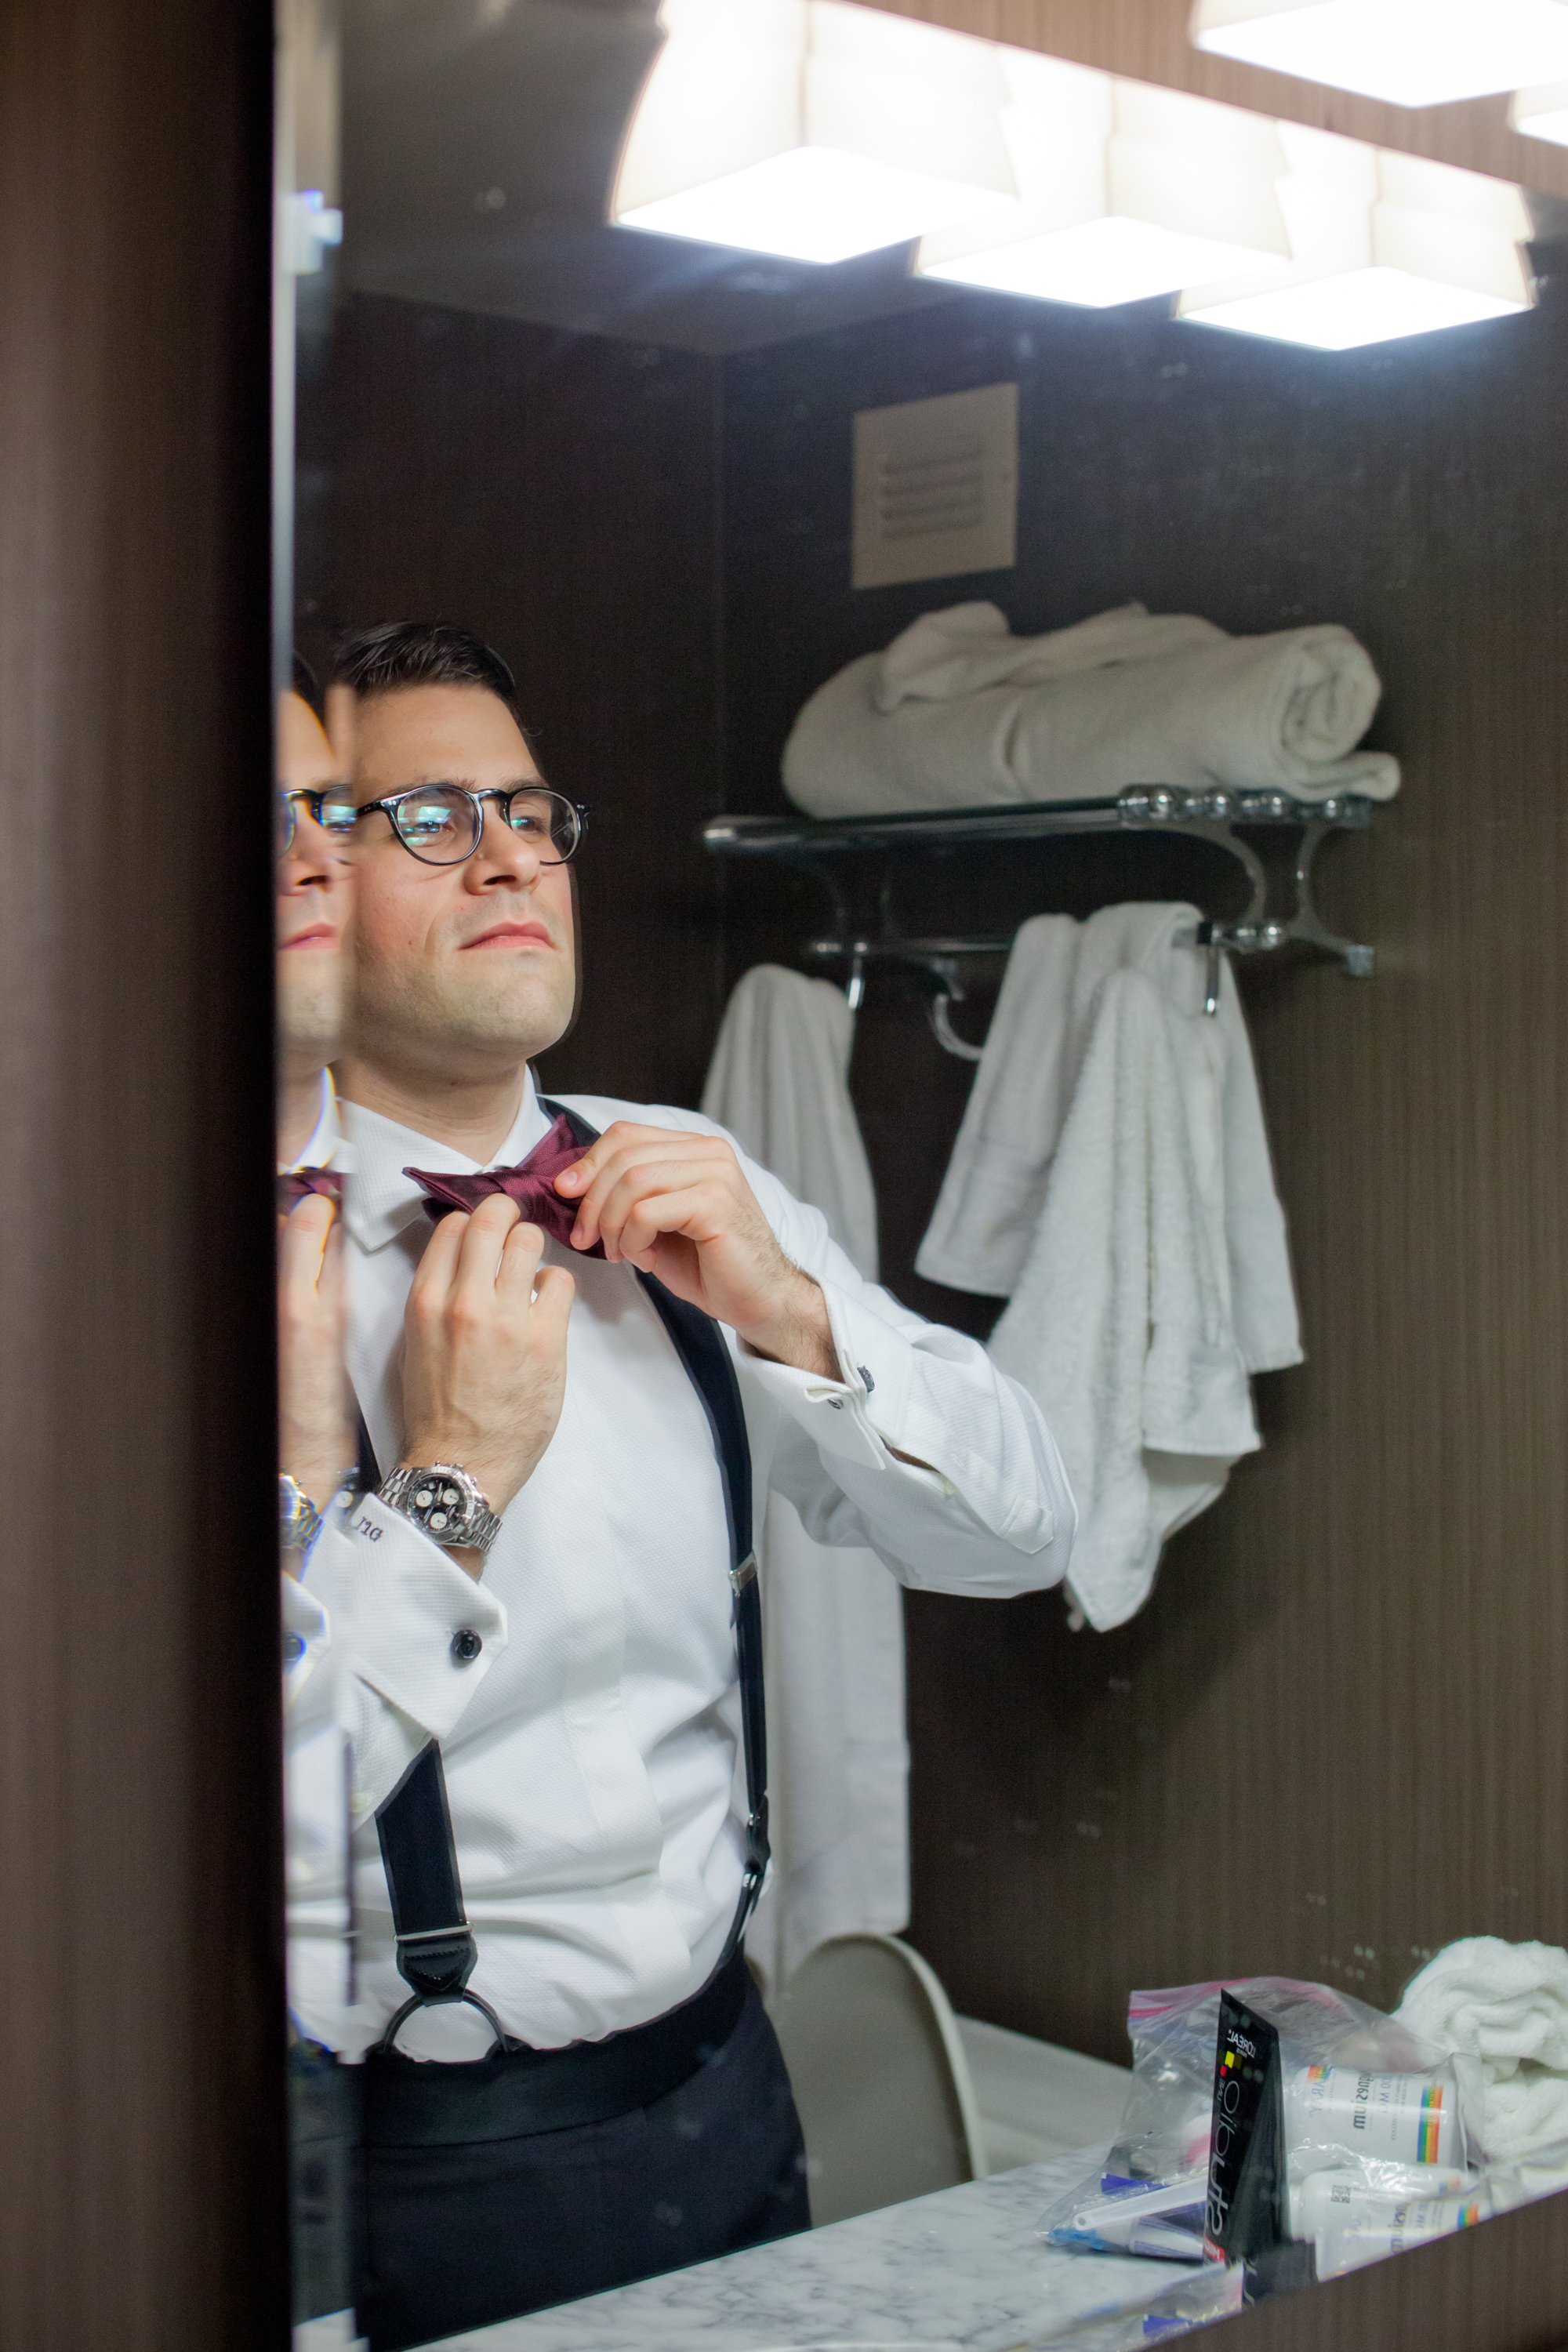 031_CarlyGaebe_SteadfastStudio_WeddingPhotography_Readyluck_Baltimore_Outdoors_HorseFarm_Fall_Groom_GettingReady.jpg